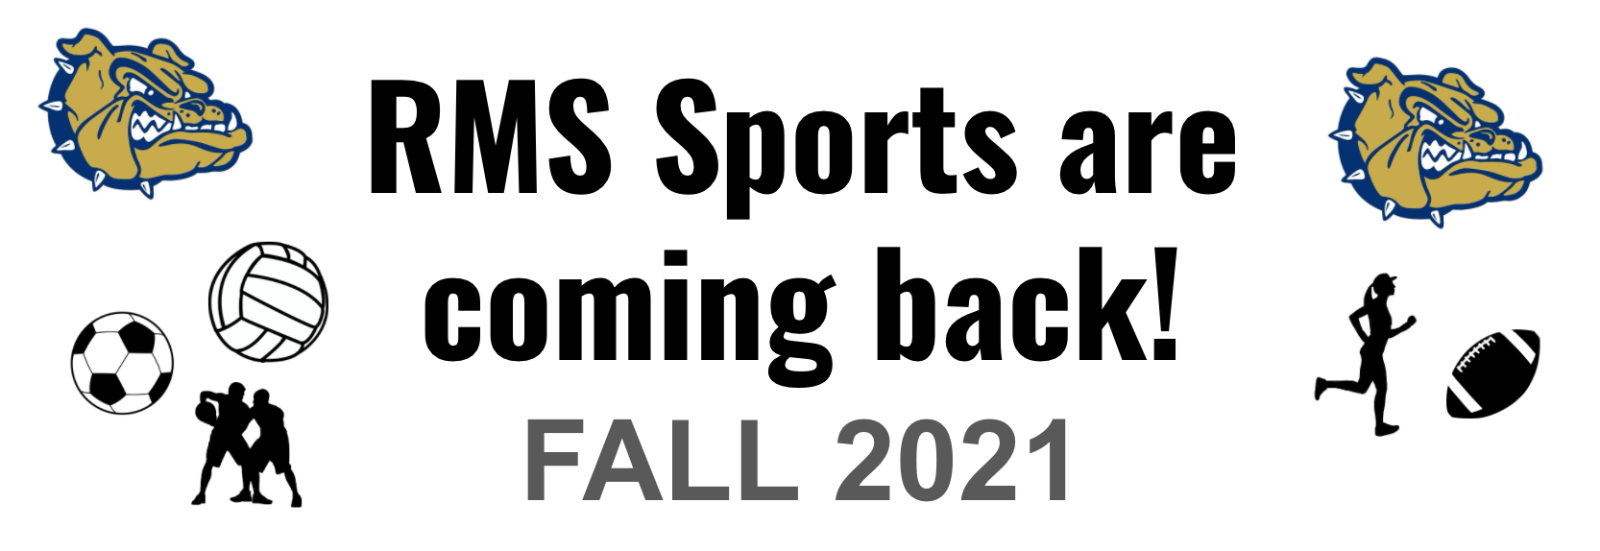 Athletics are Returning at RMS!